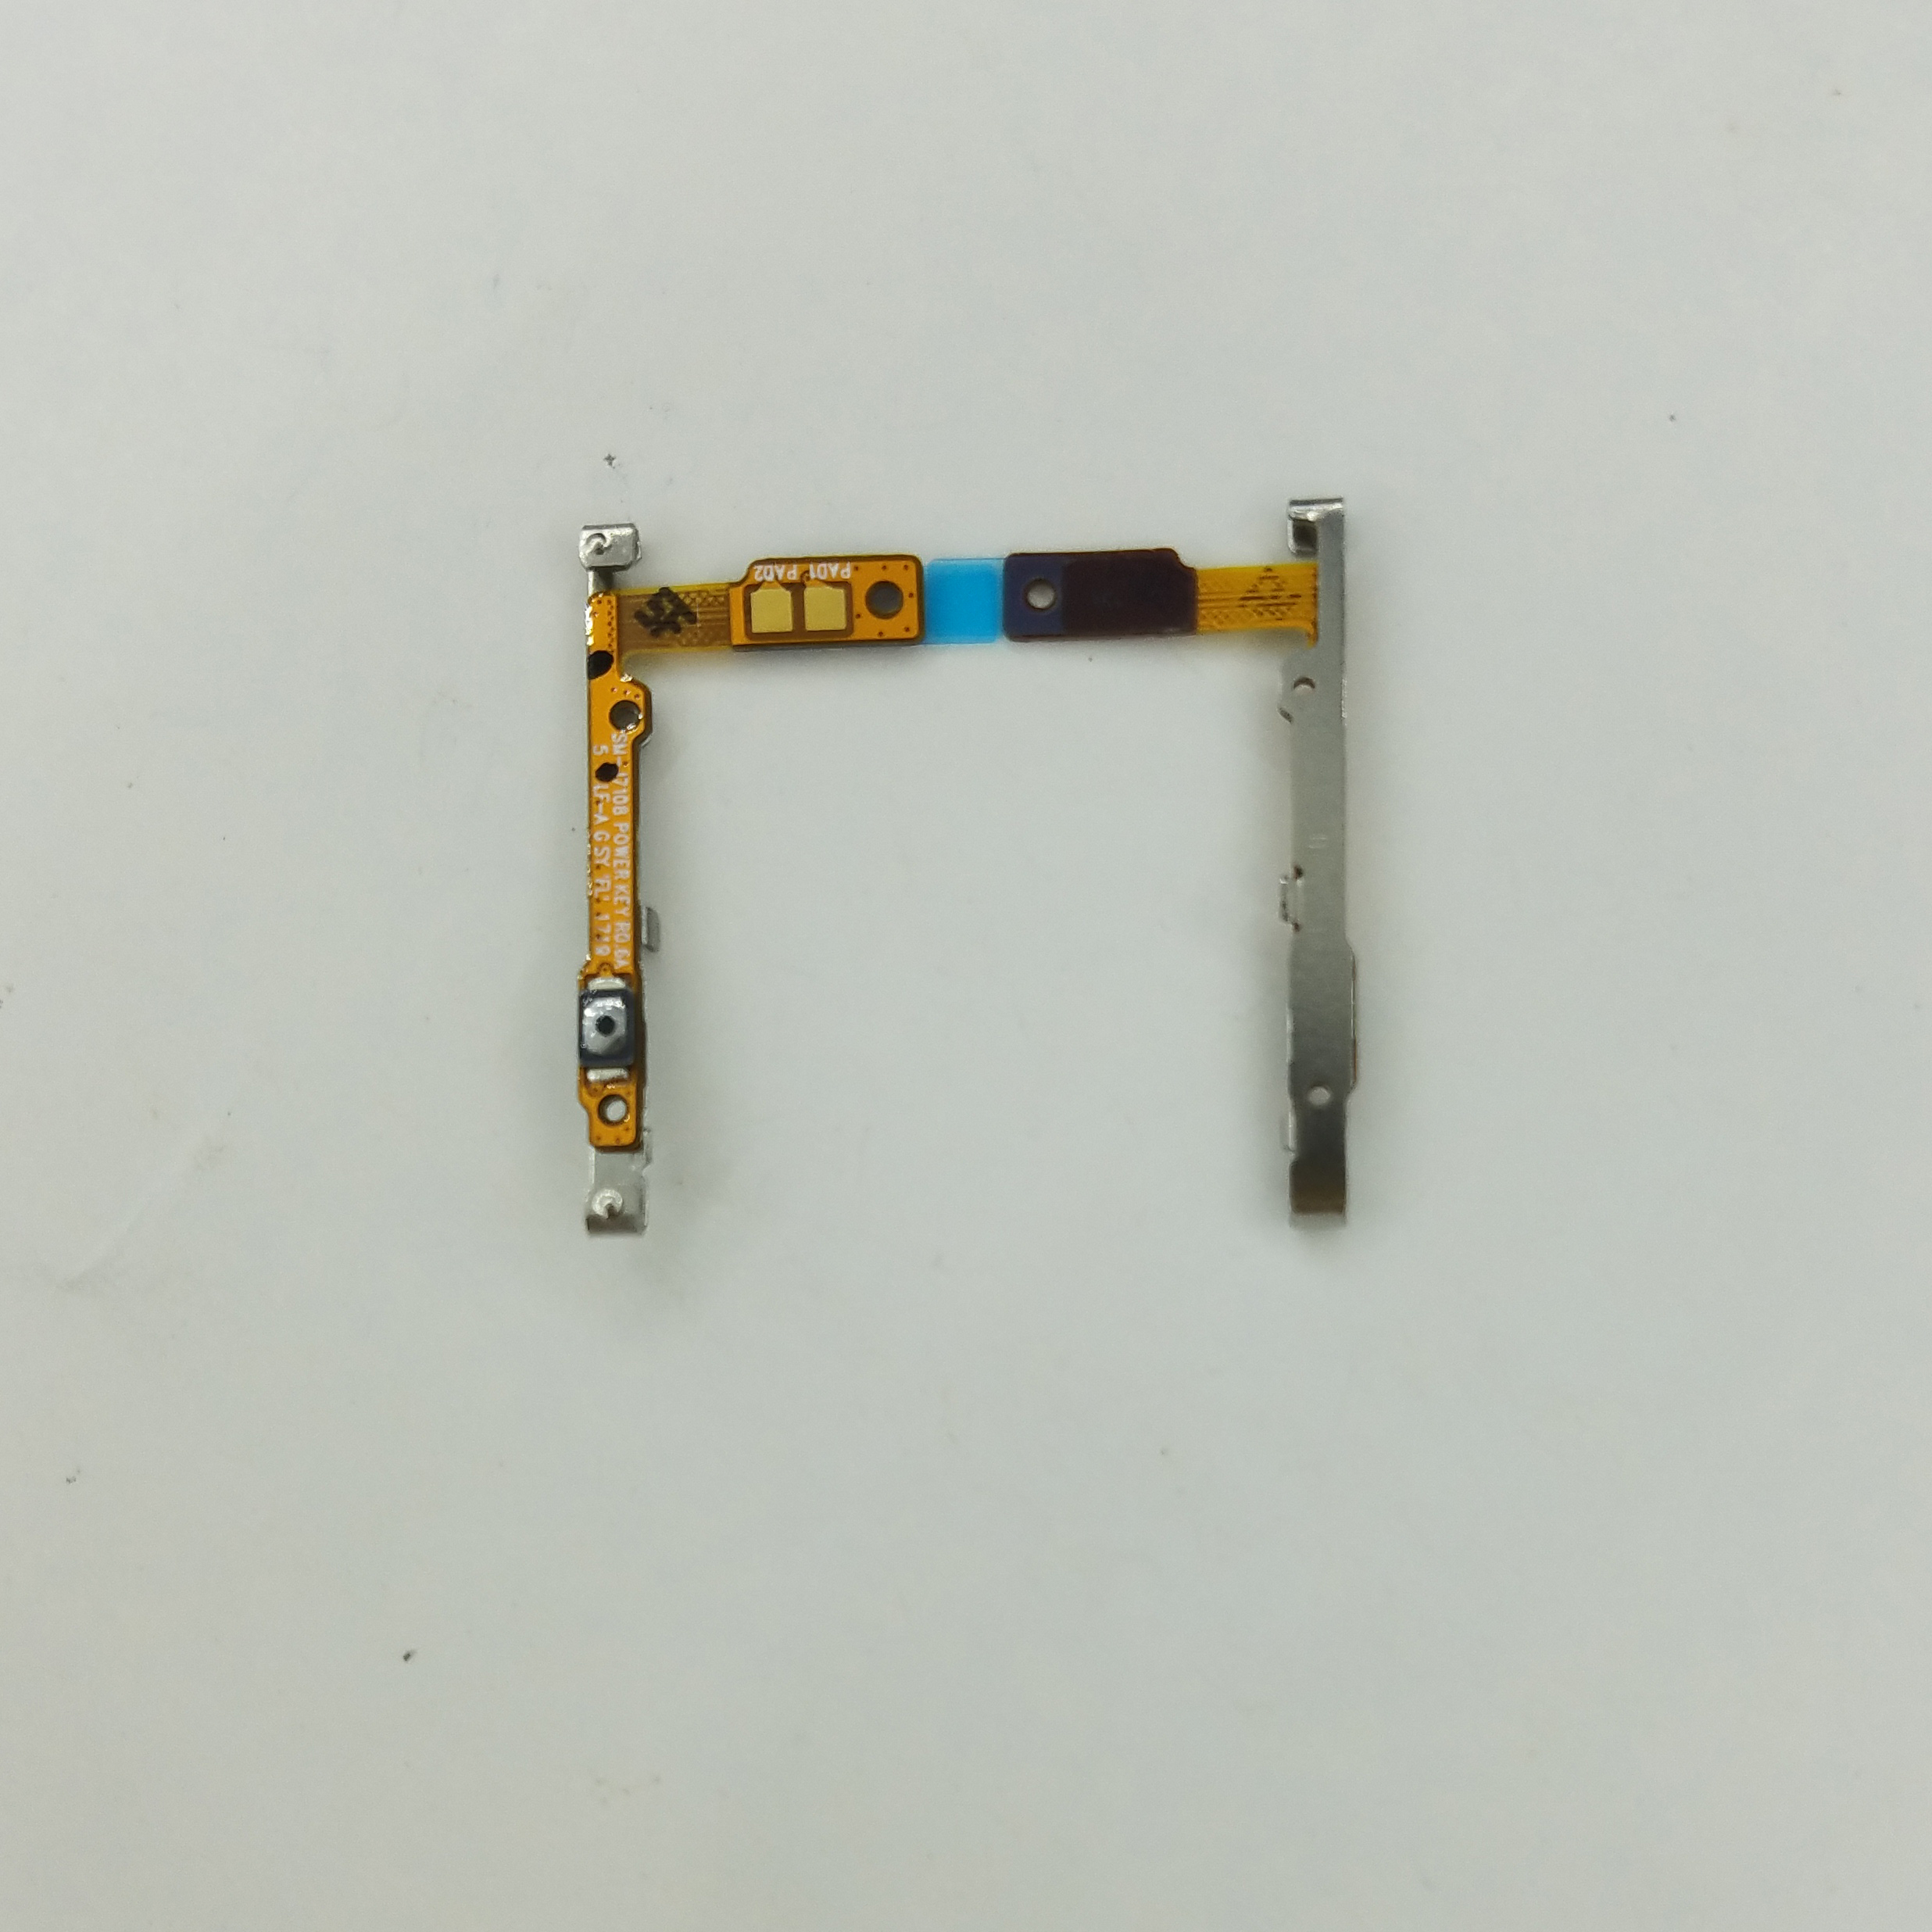 For Samsung Galaxy J5 2016 J510 J510F J510FN J510H J510M J510G Original Phone Housing New Power Button On Off Key Flex Cable